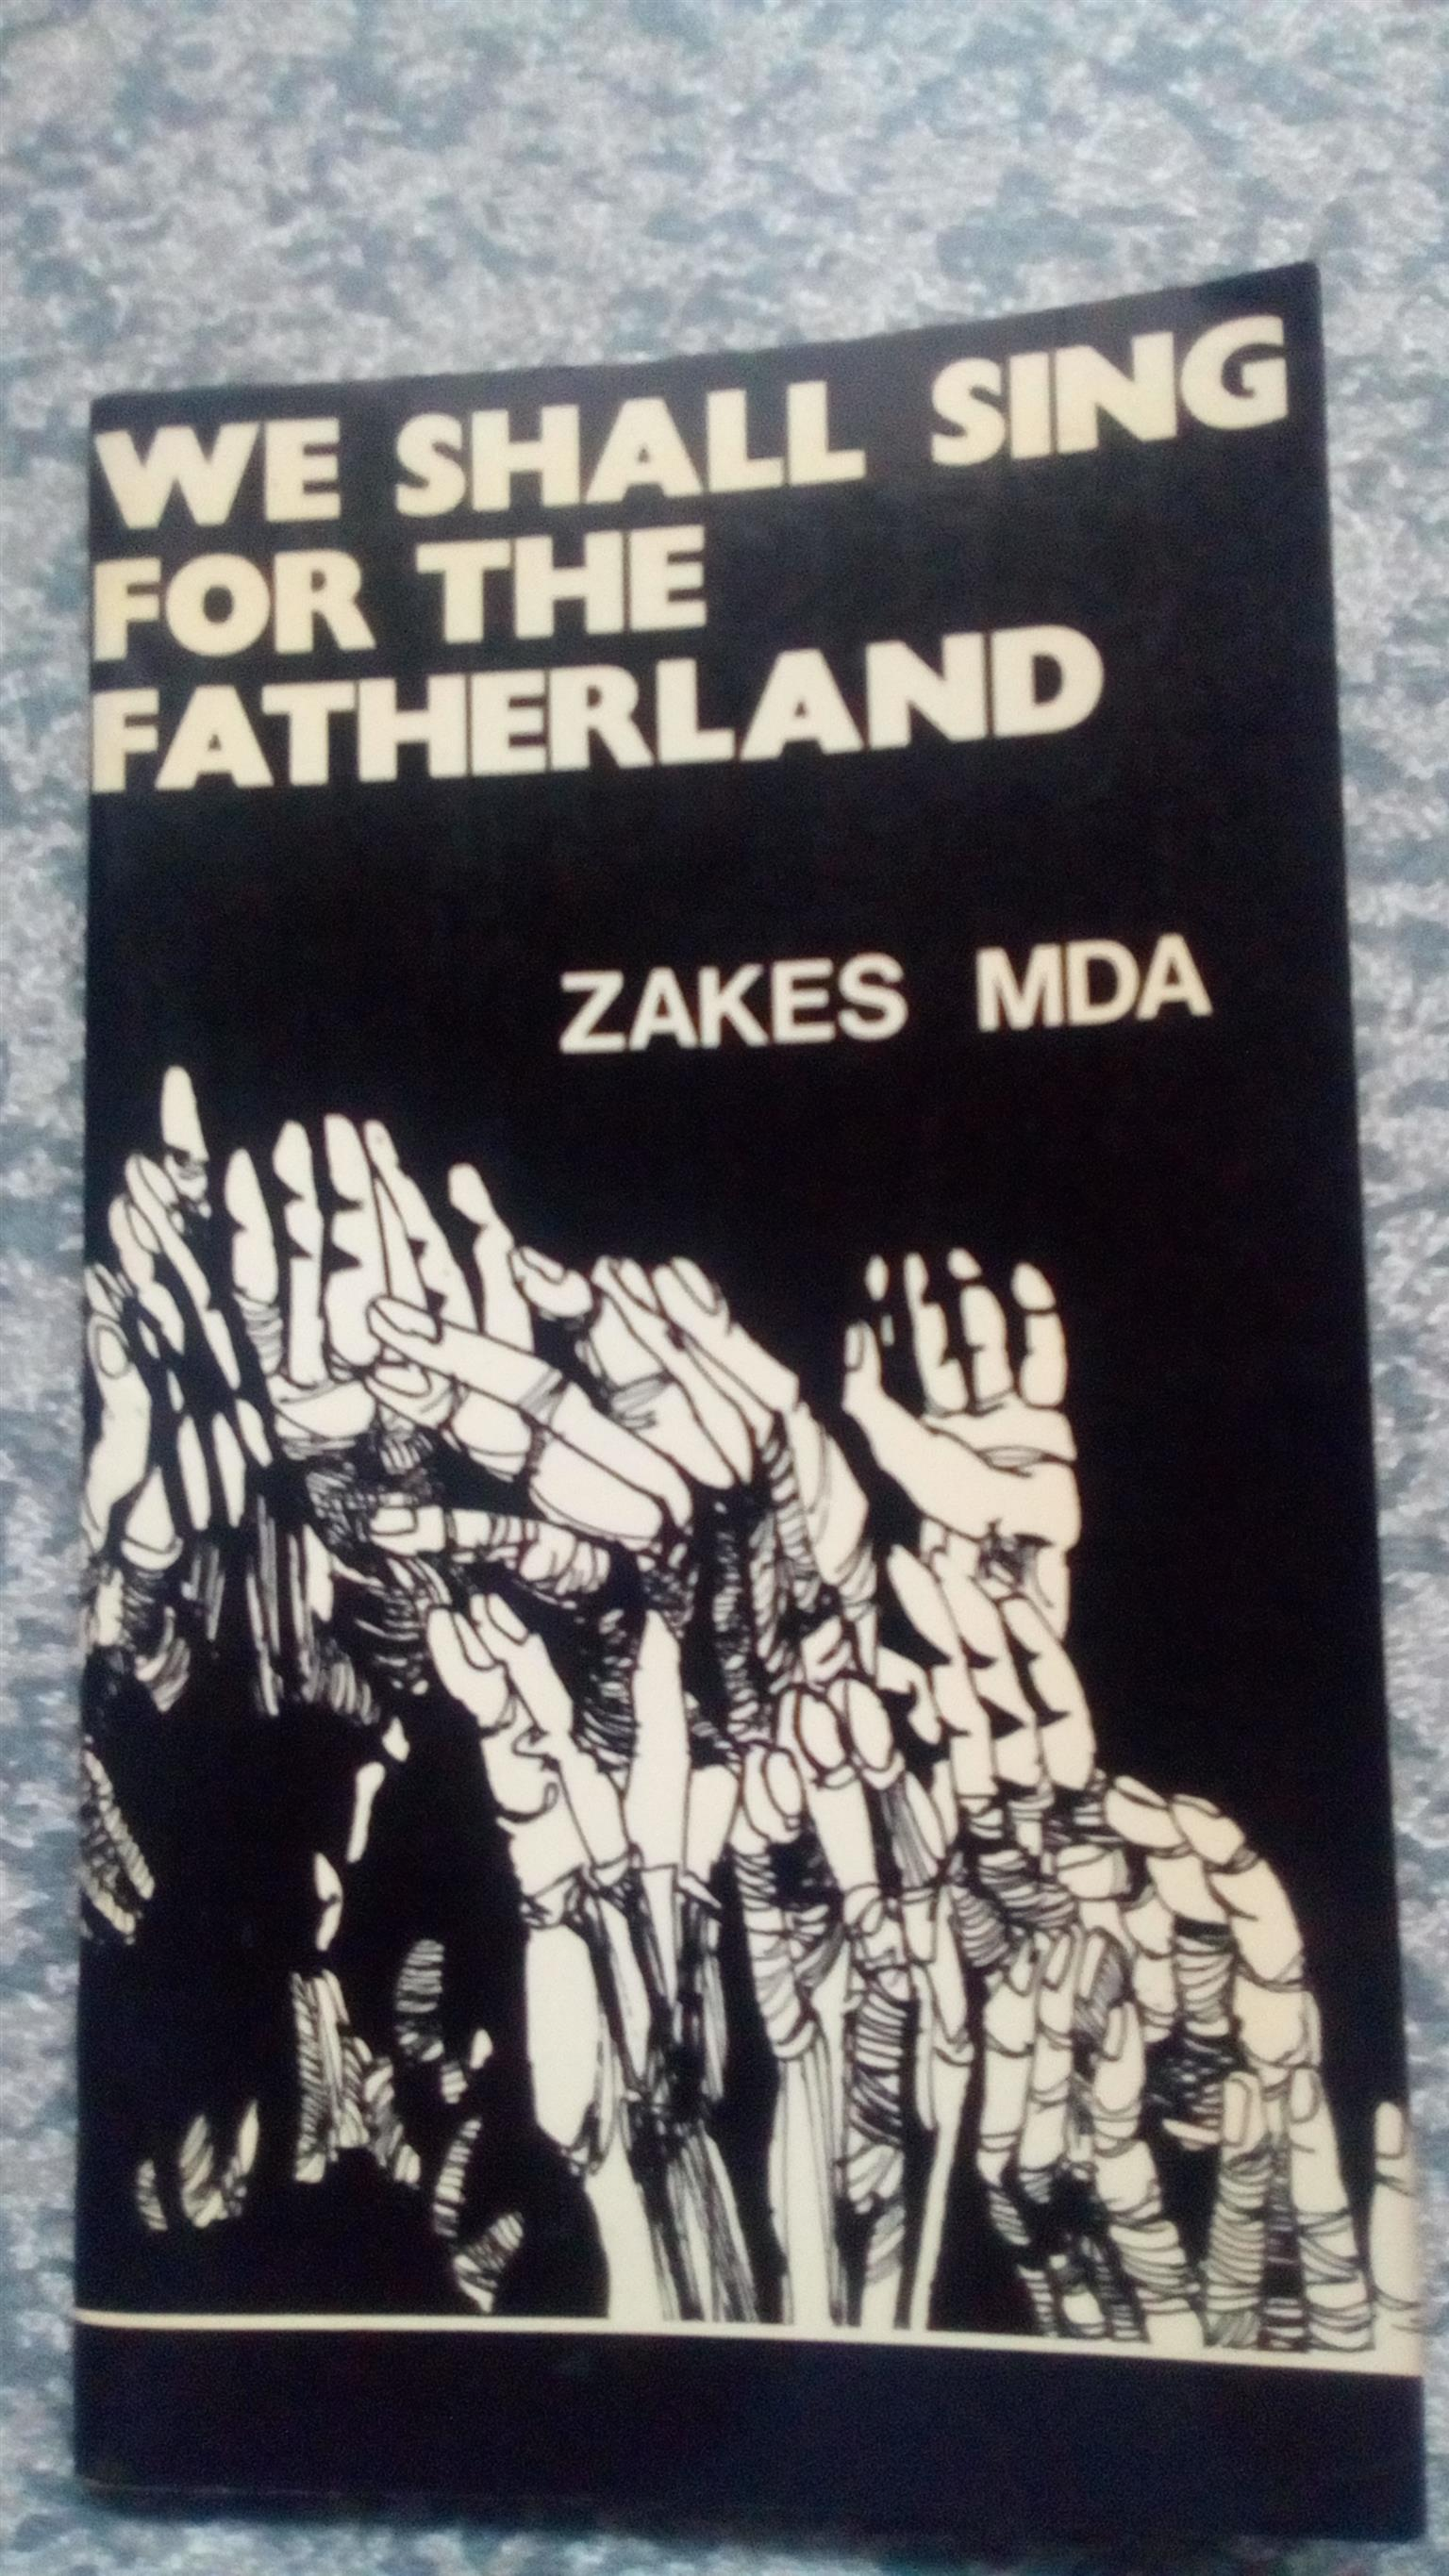 We Shall Sing for the Fatherland  by Zakes Mda